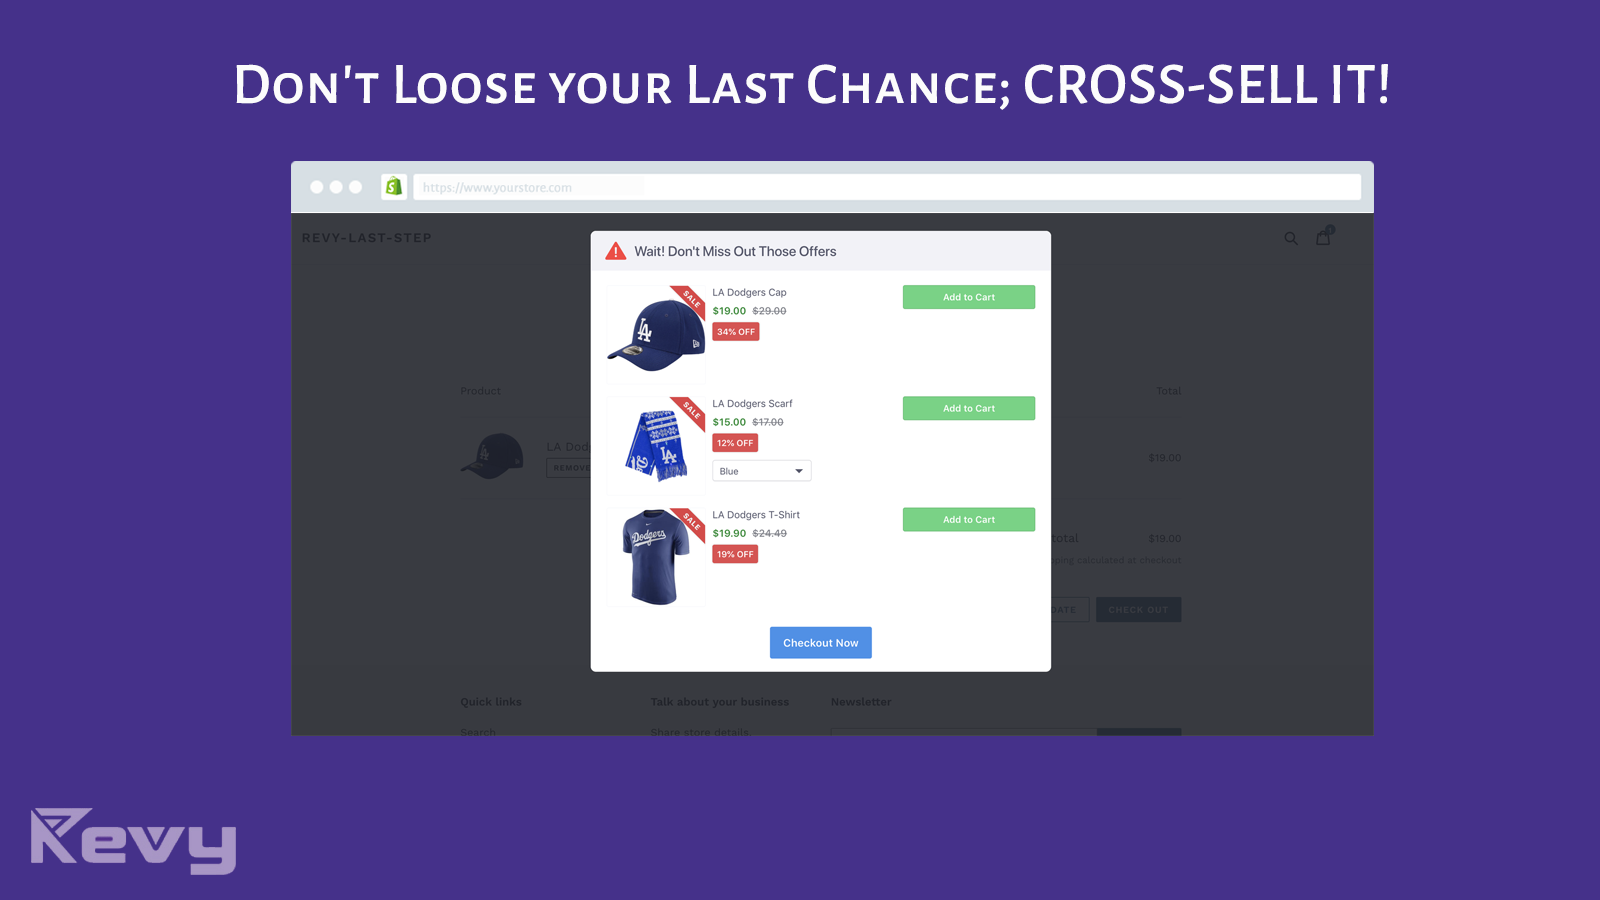 Cross sell at checkout to increase sales at the right time